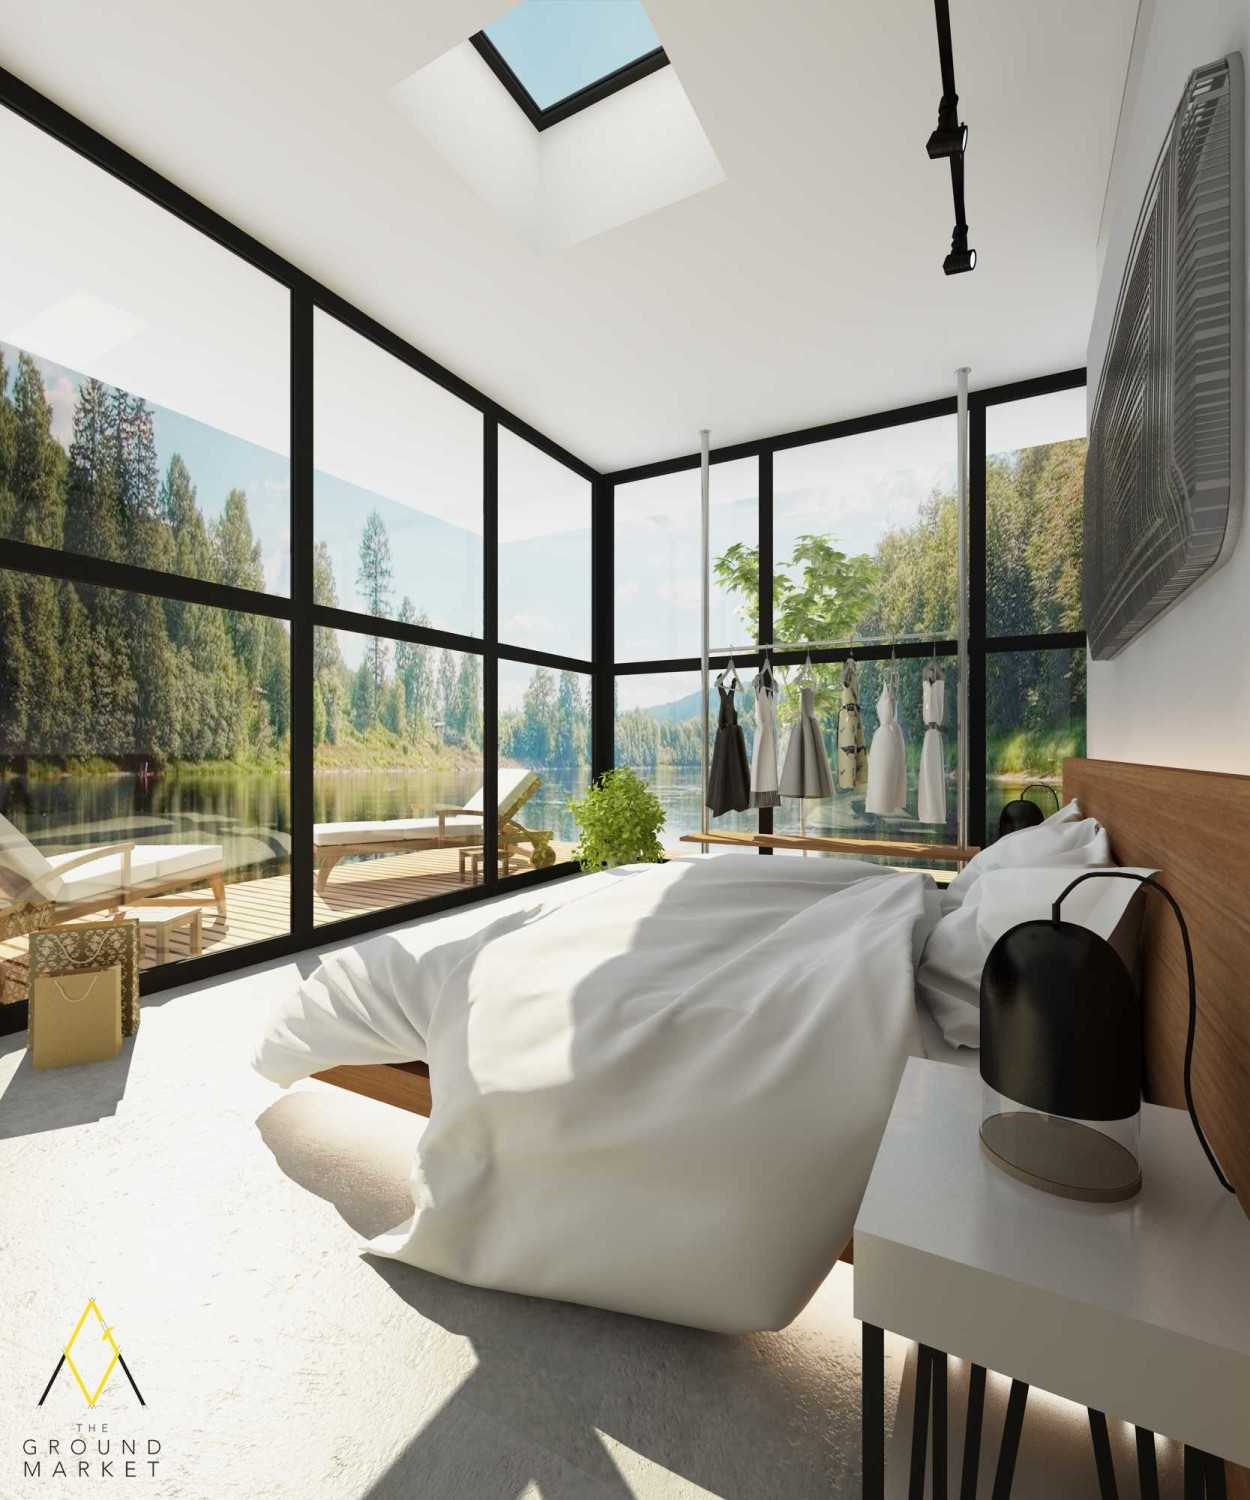 The Ground Market 3D Projects Jakarta Jakarta Bedroom With Stunning View Industrial 19452